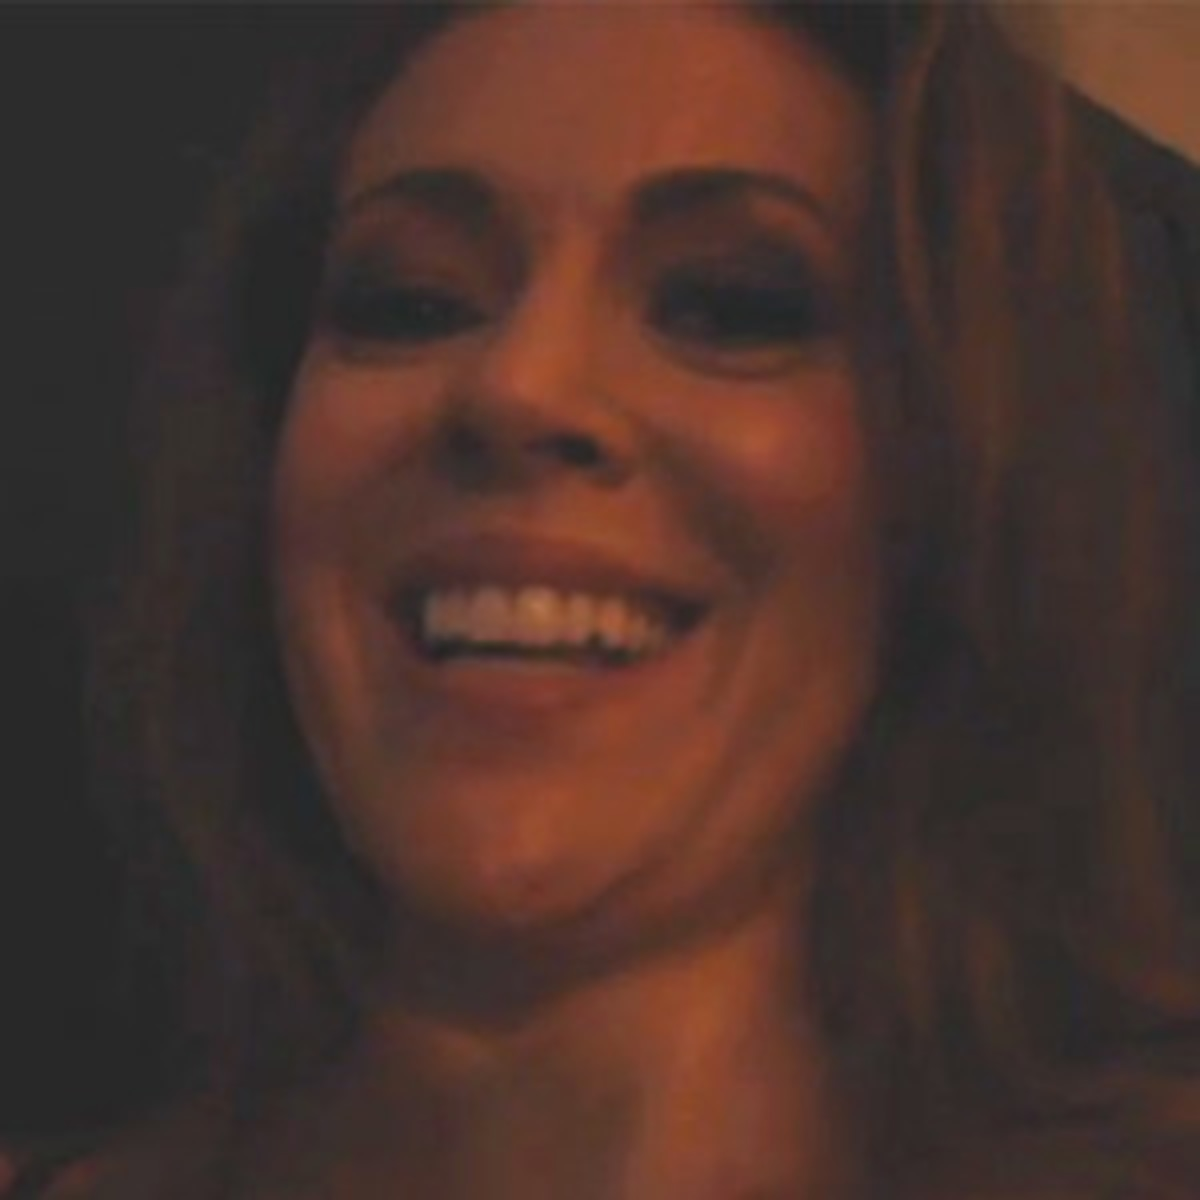 Alyssa Milano Leaked Photos watch alyssa milano's leaked sex tape | e! news deutschland